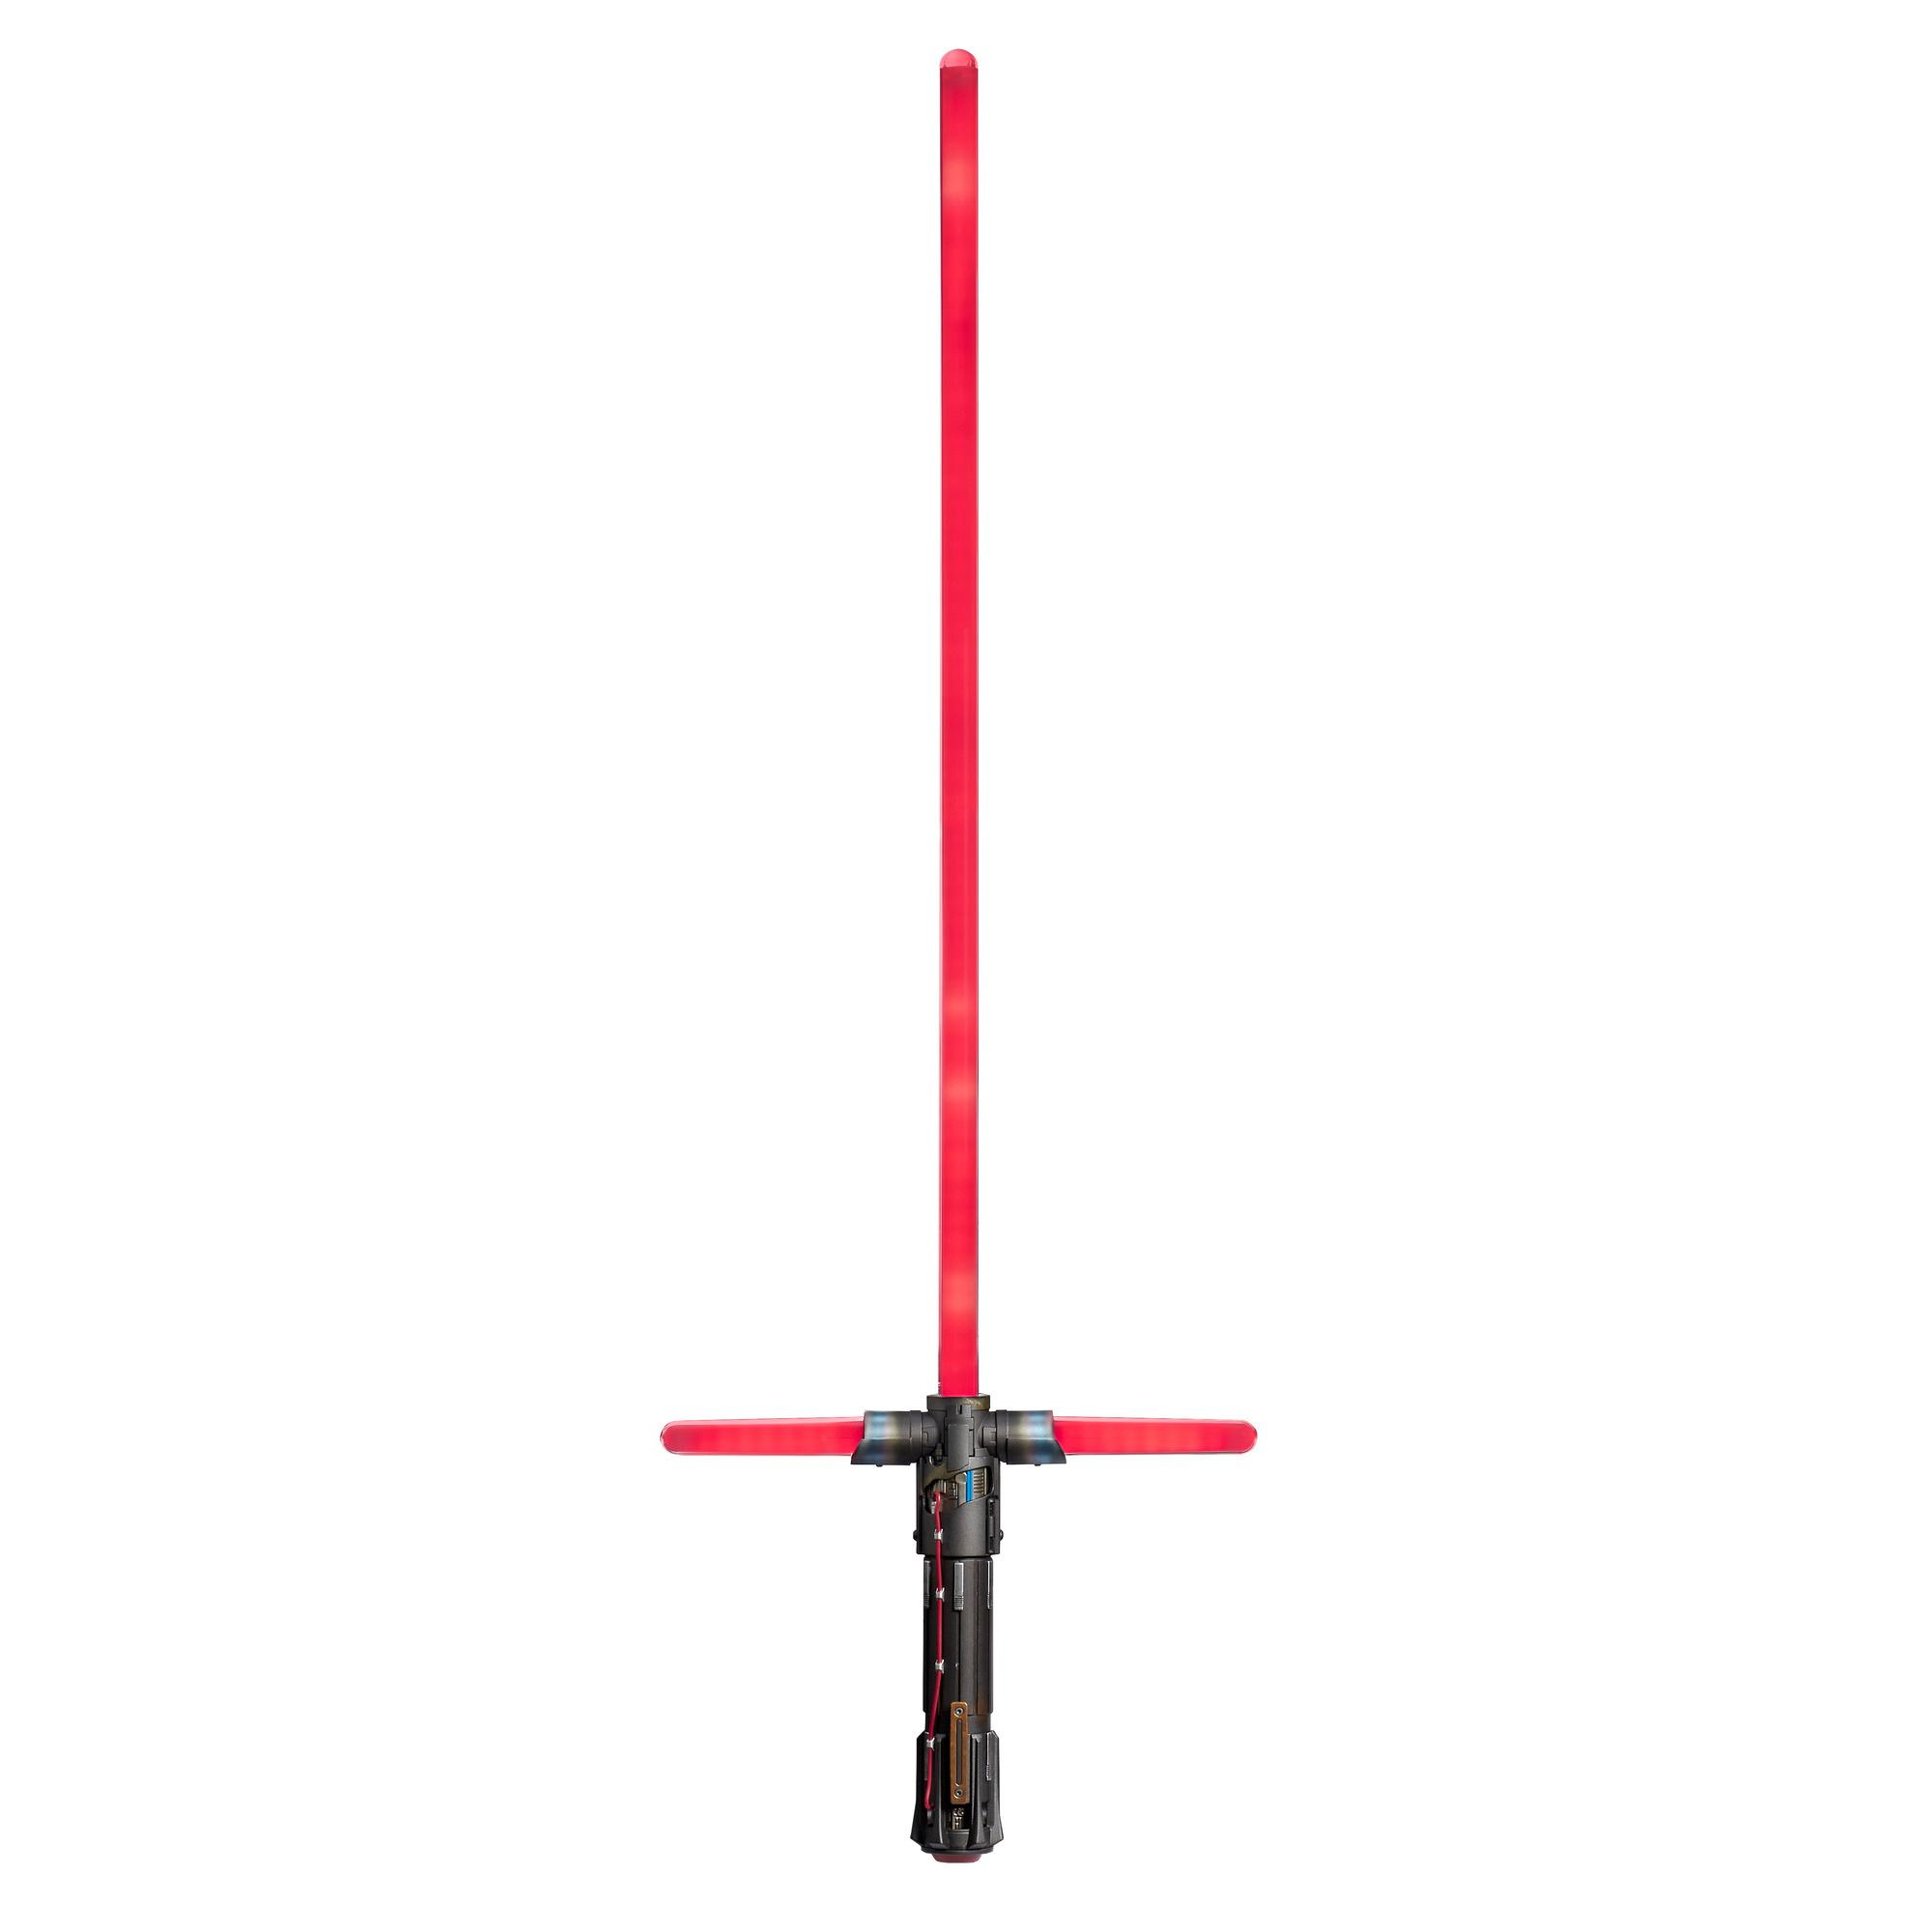 Star Wars The Black Series Supreme Leader Kylo Ren Force FX Elite Lightsaber with Advanced LED, Sound Effects